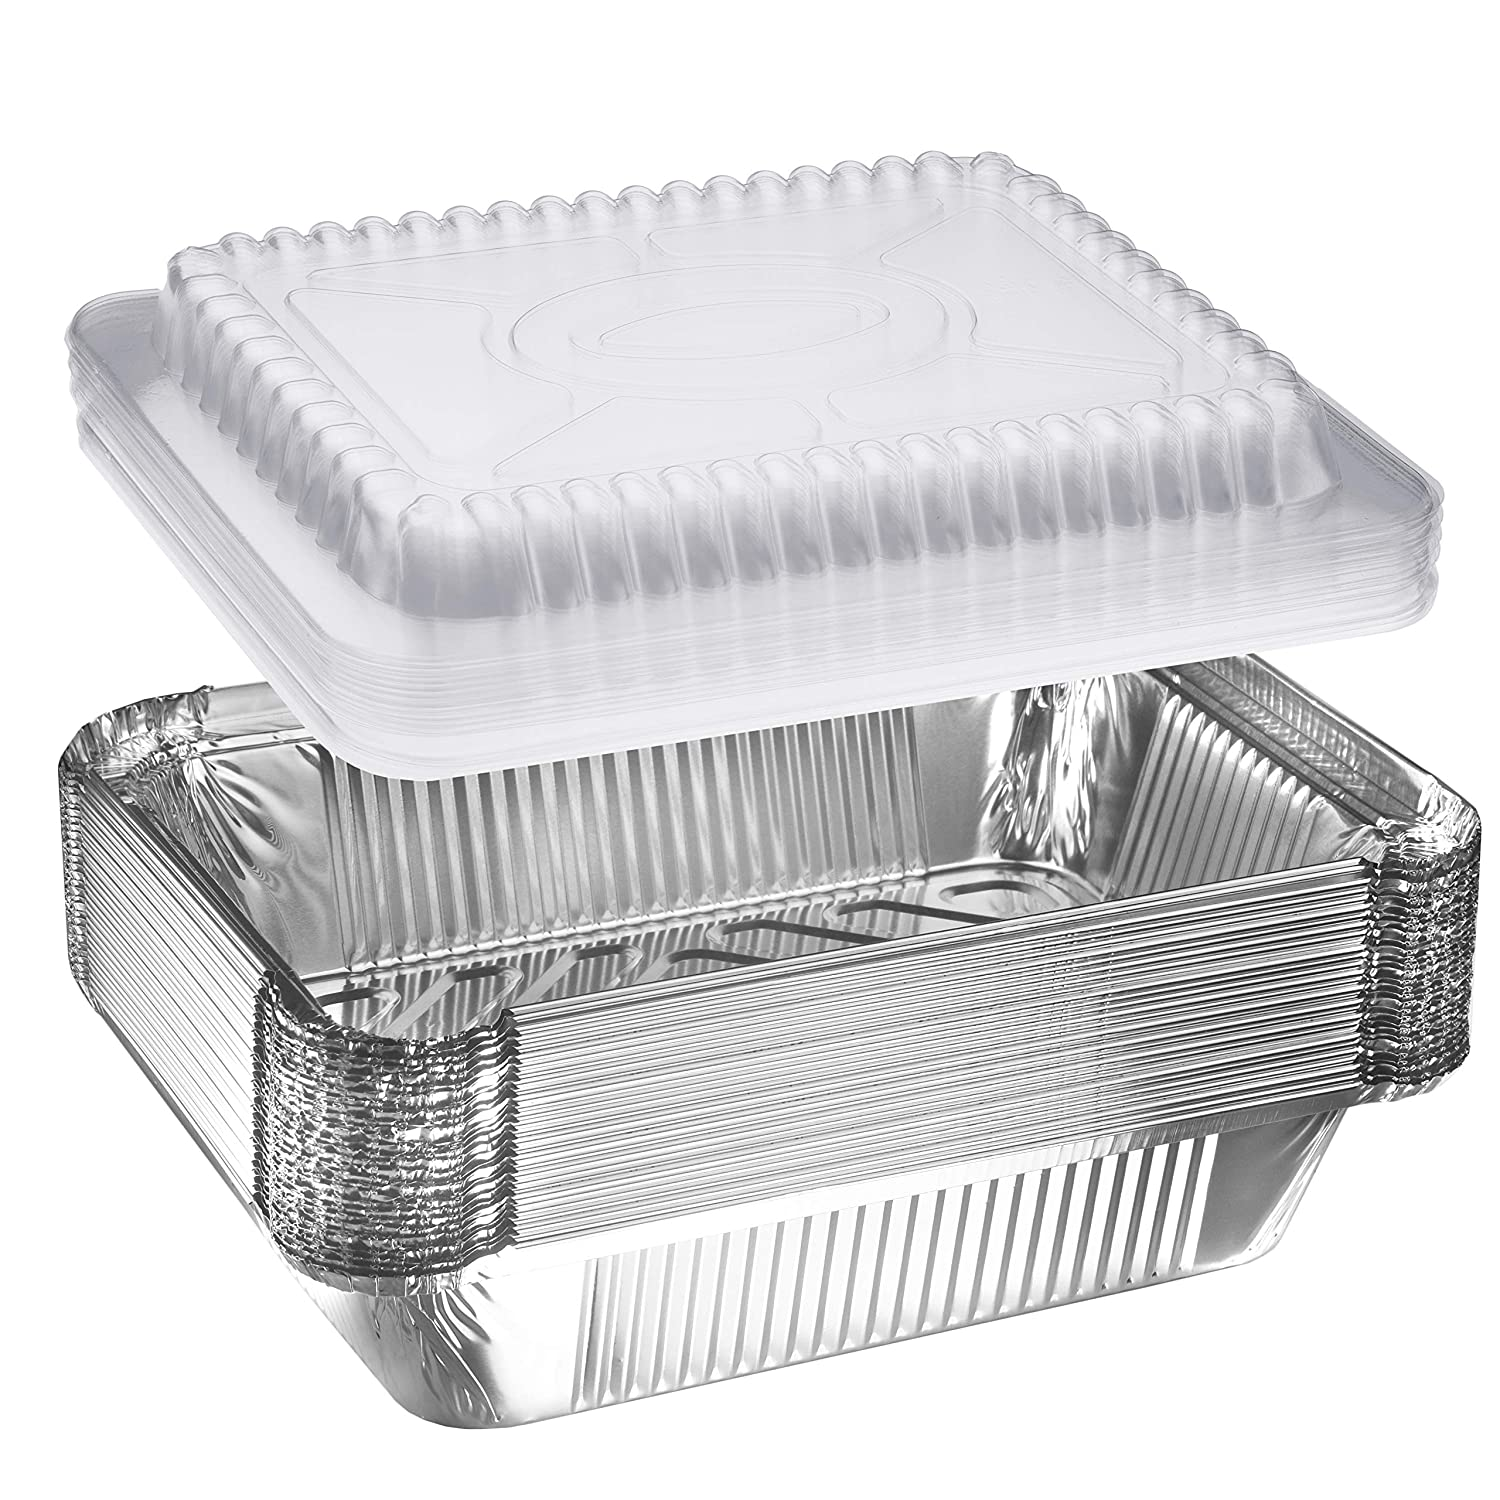 "NYHI 30-Pack Heavy Duty Disposable Aluminum Oblong Foil Pans with Plastic Covers Recyclable Tin Food Storage Tray Extra-Sturdy Containers for Cooking, Baking, Meal Prep, Takeout - 8.4"" x 5.9"" - 2.25lb"